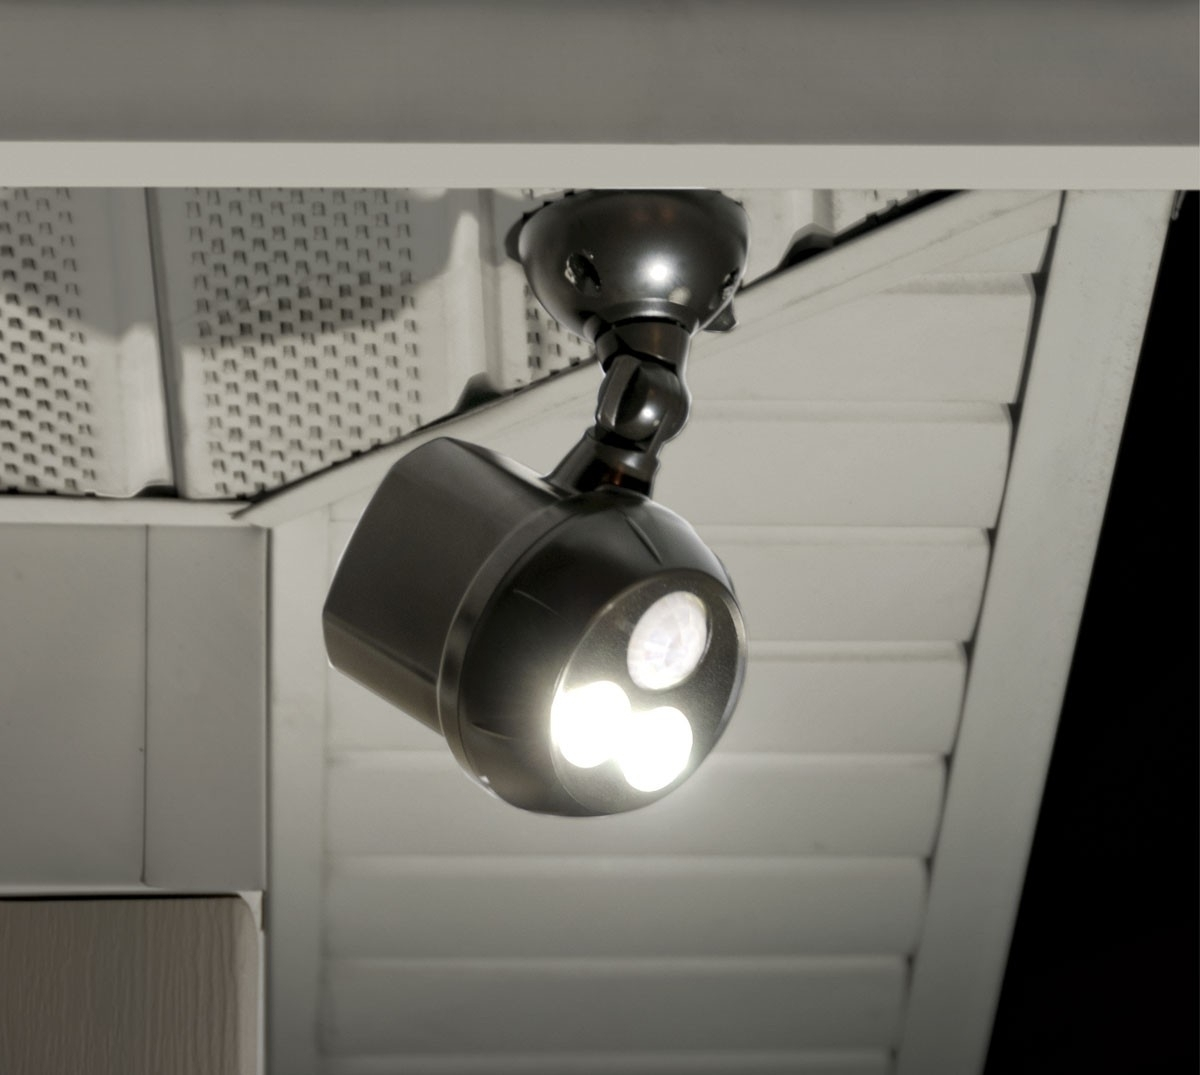 Dusk To Dawn Light Rural King: 15 Best Ideas Of Battery Operated Outdoor Lights